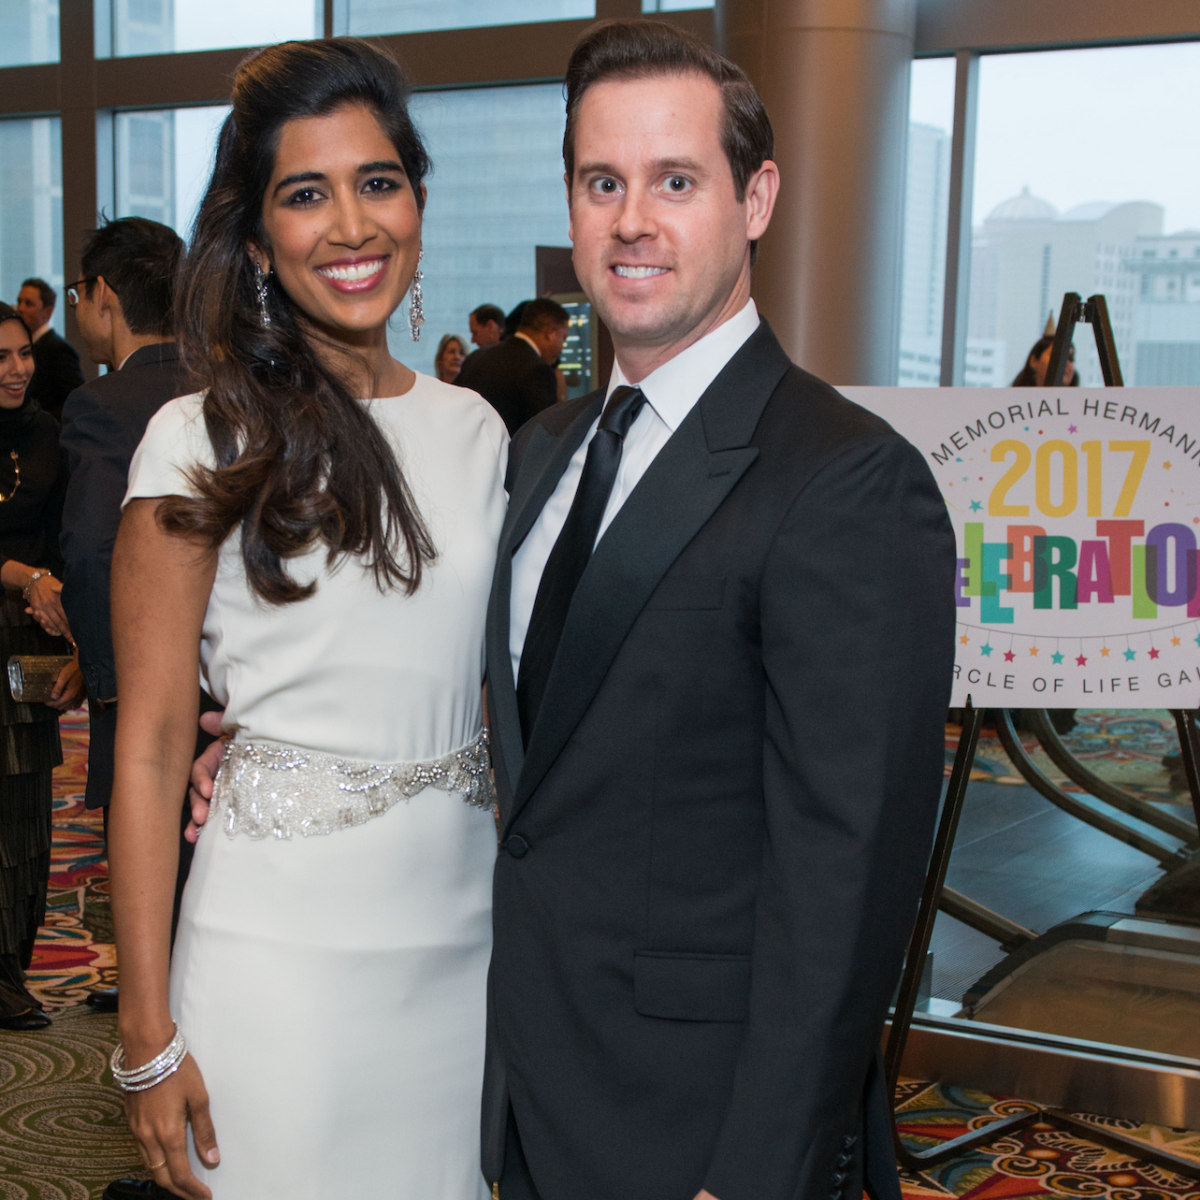 Divya and Chris Brown at Memorial Hermann Gala